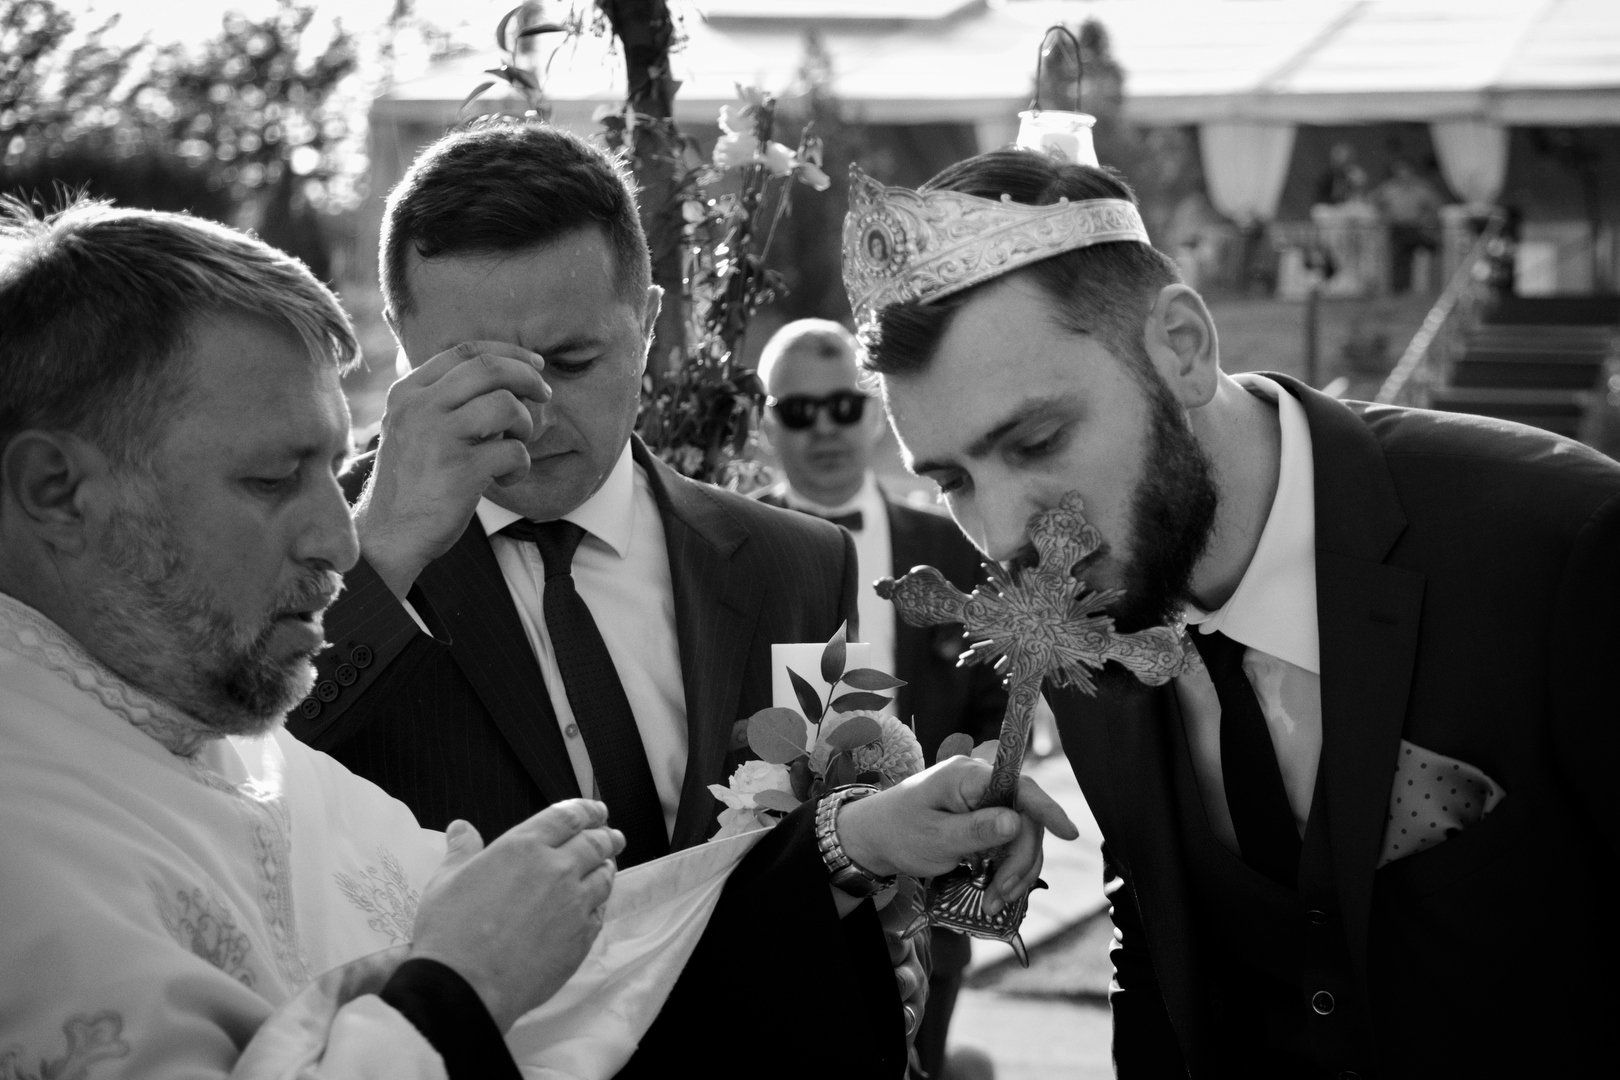 behind the scenes at Romanian wedding